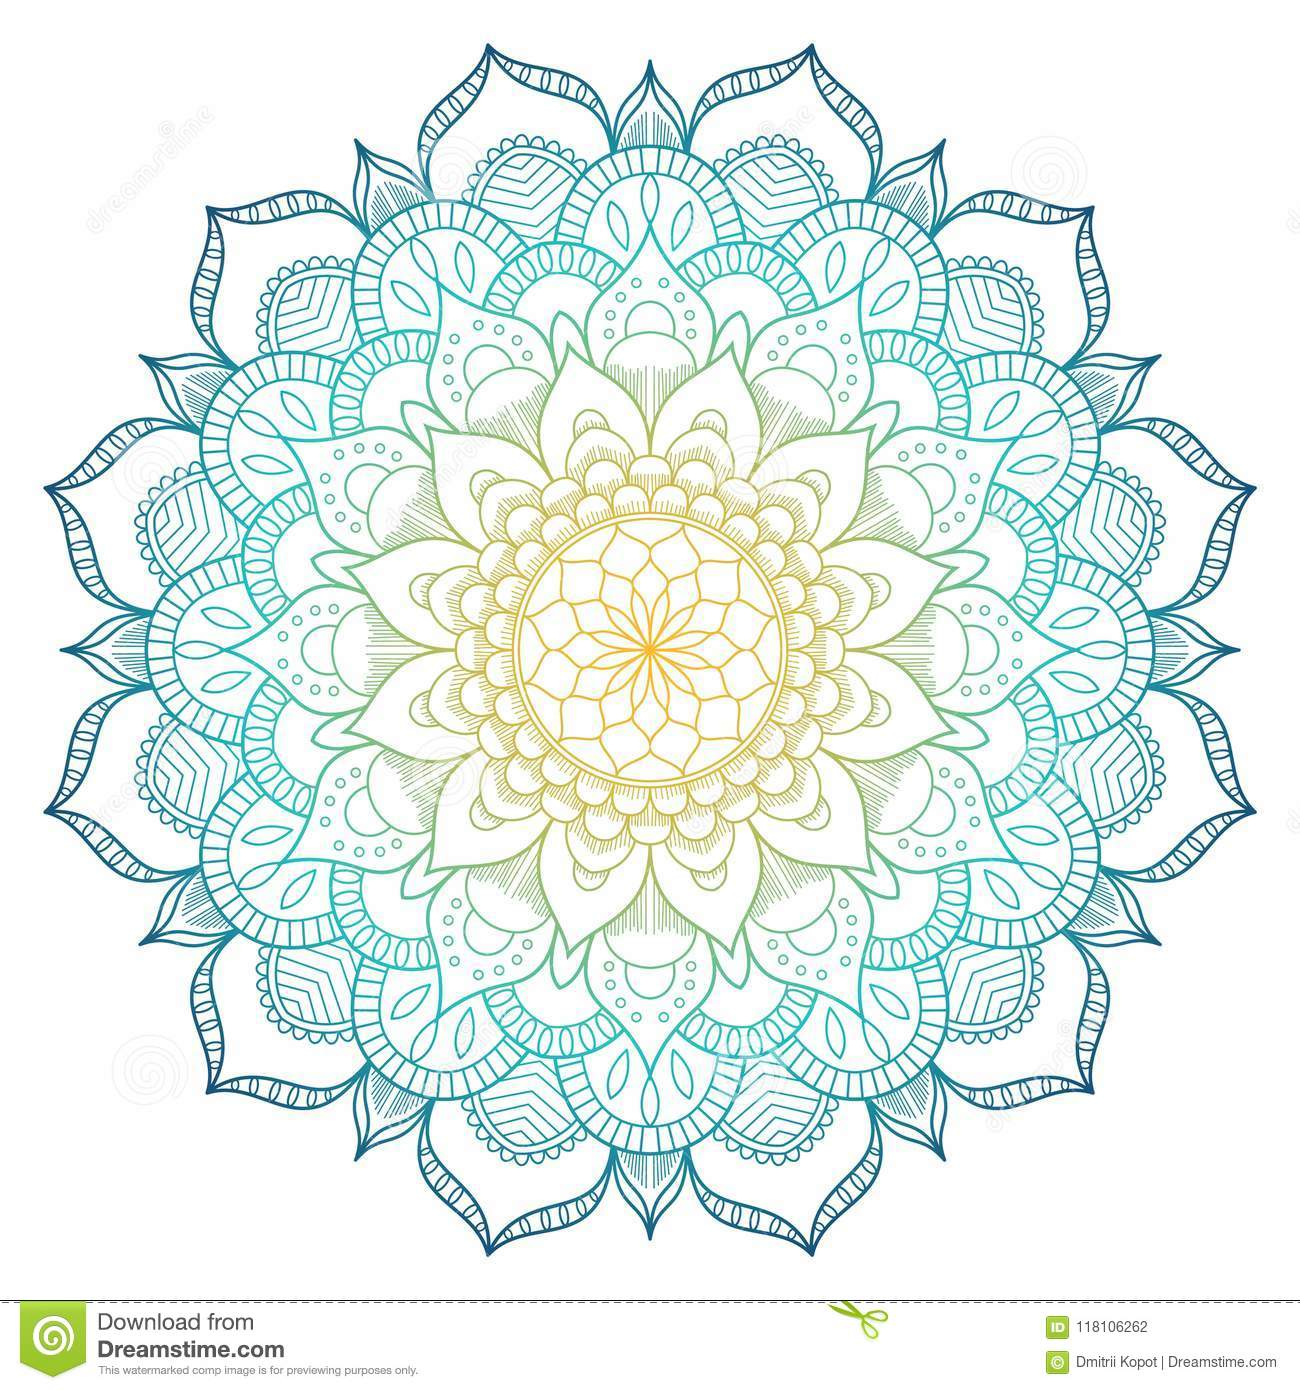 Mandala pattern colored background. Vector illustration. Meditation element for India yoga. Ornament for decorating a